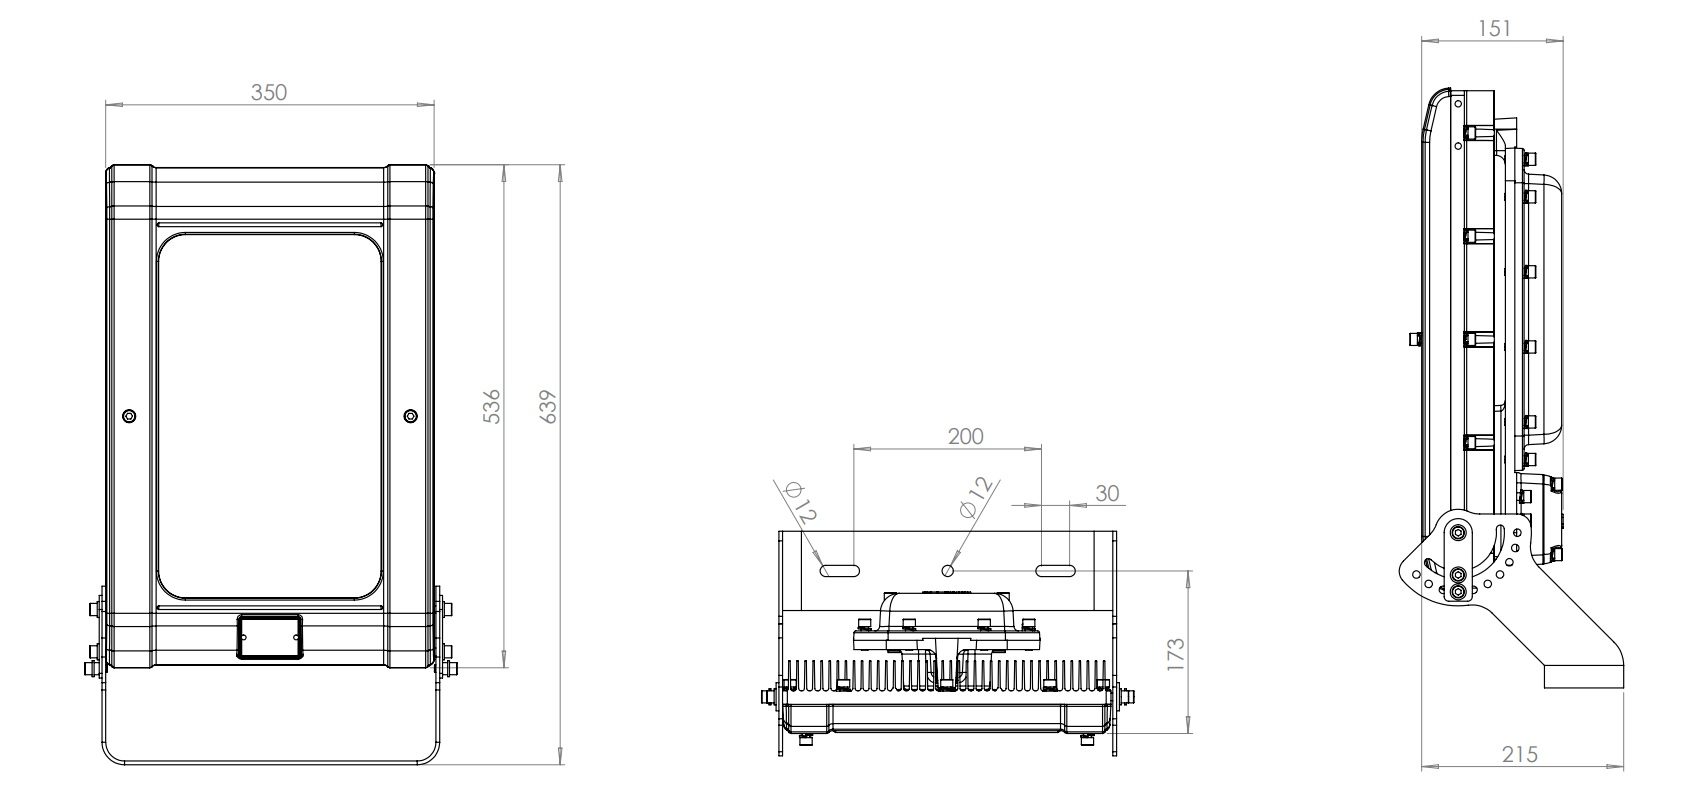 Zone 2 Floodlights - Product Dimensions